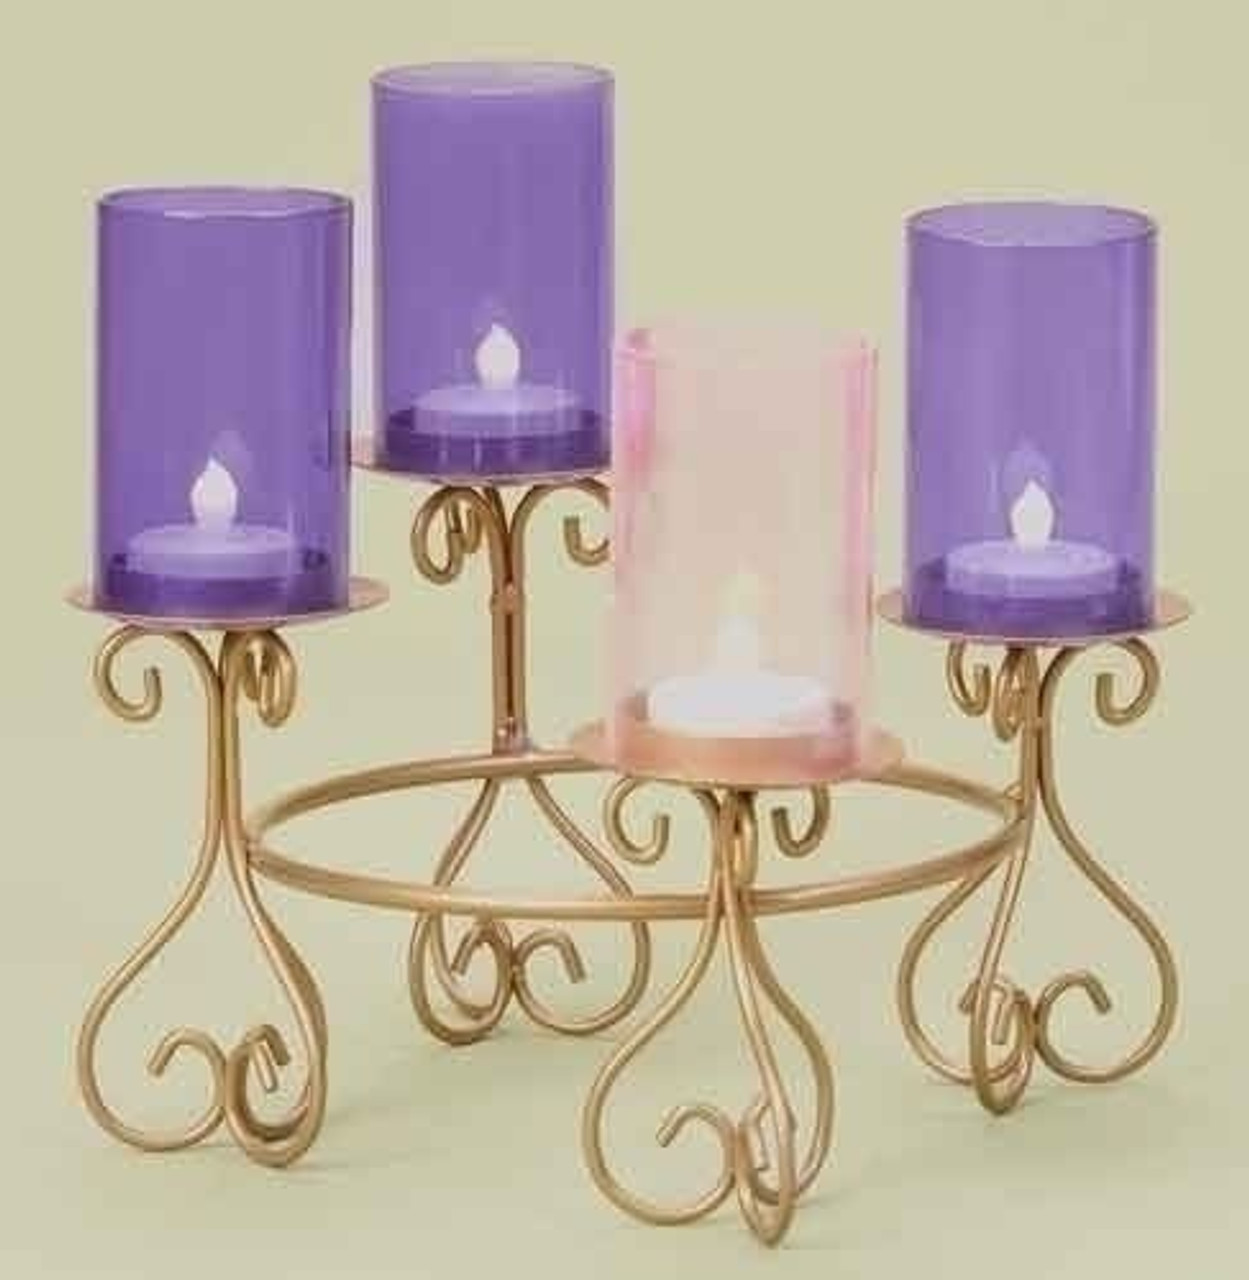 Scrollwork Advent Candleholder Gold Painted Metal 8 3 4 Diameter F C Ziegler Company